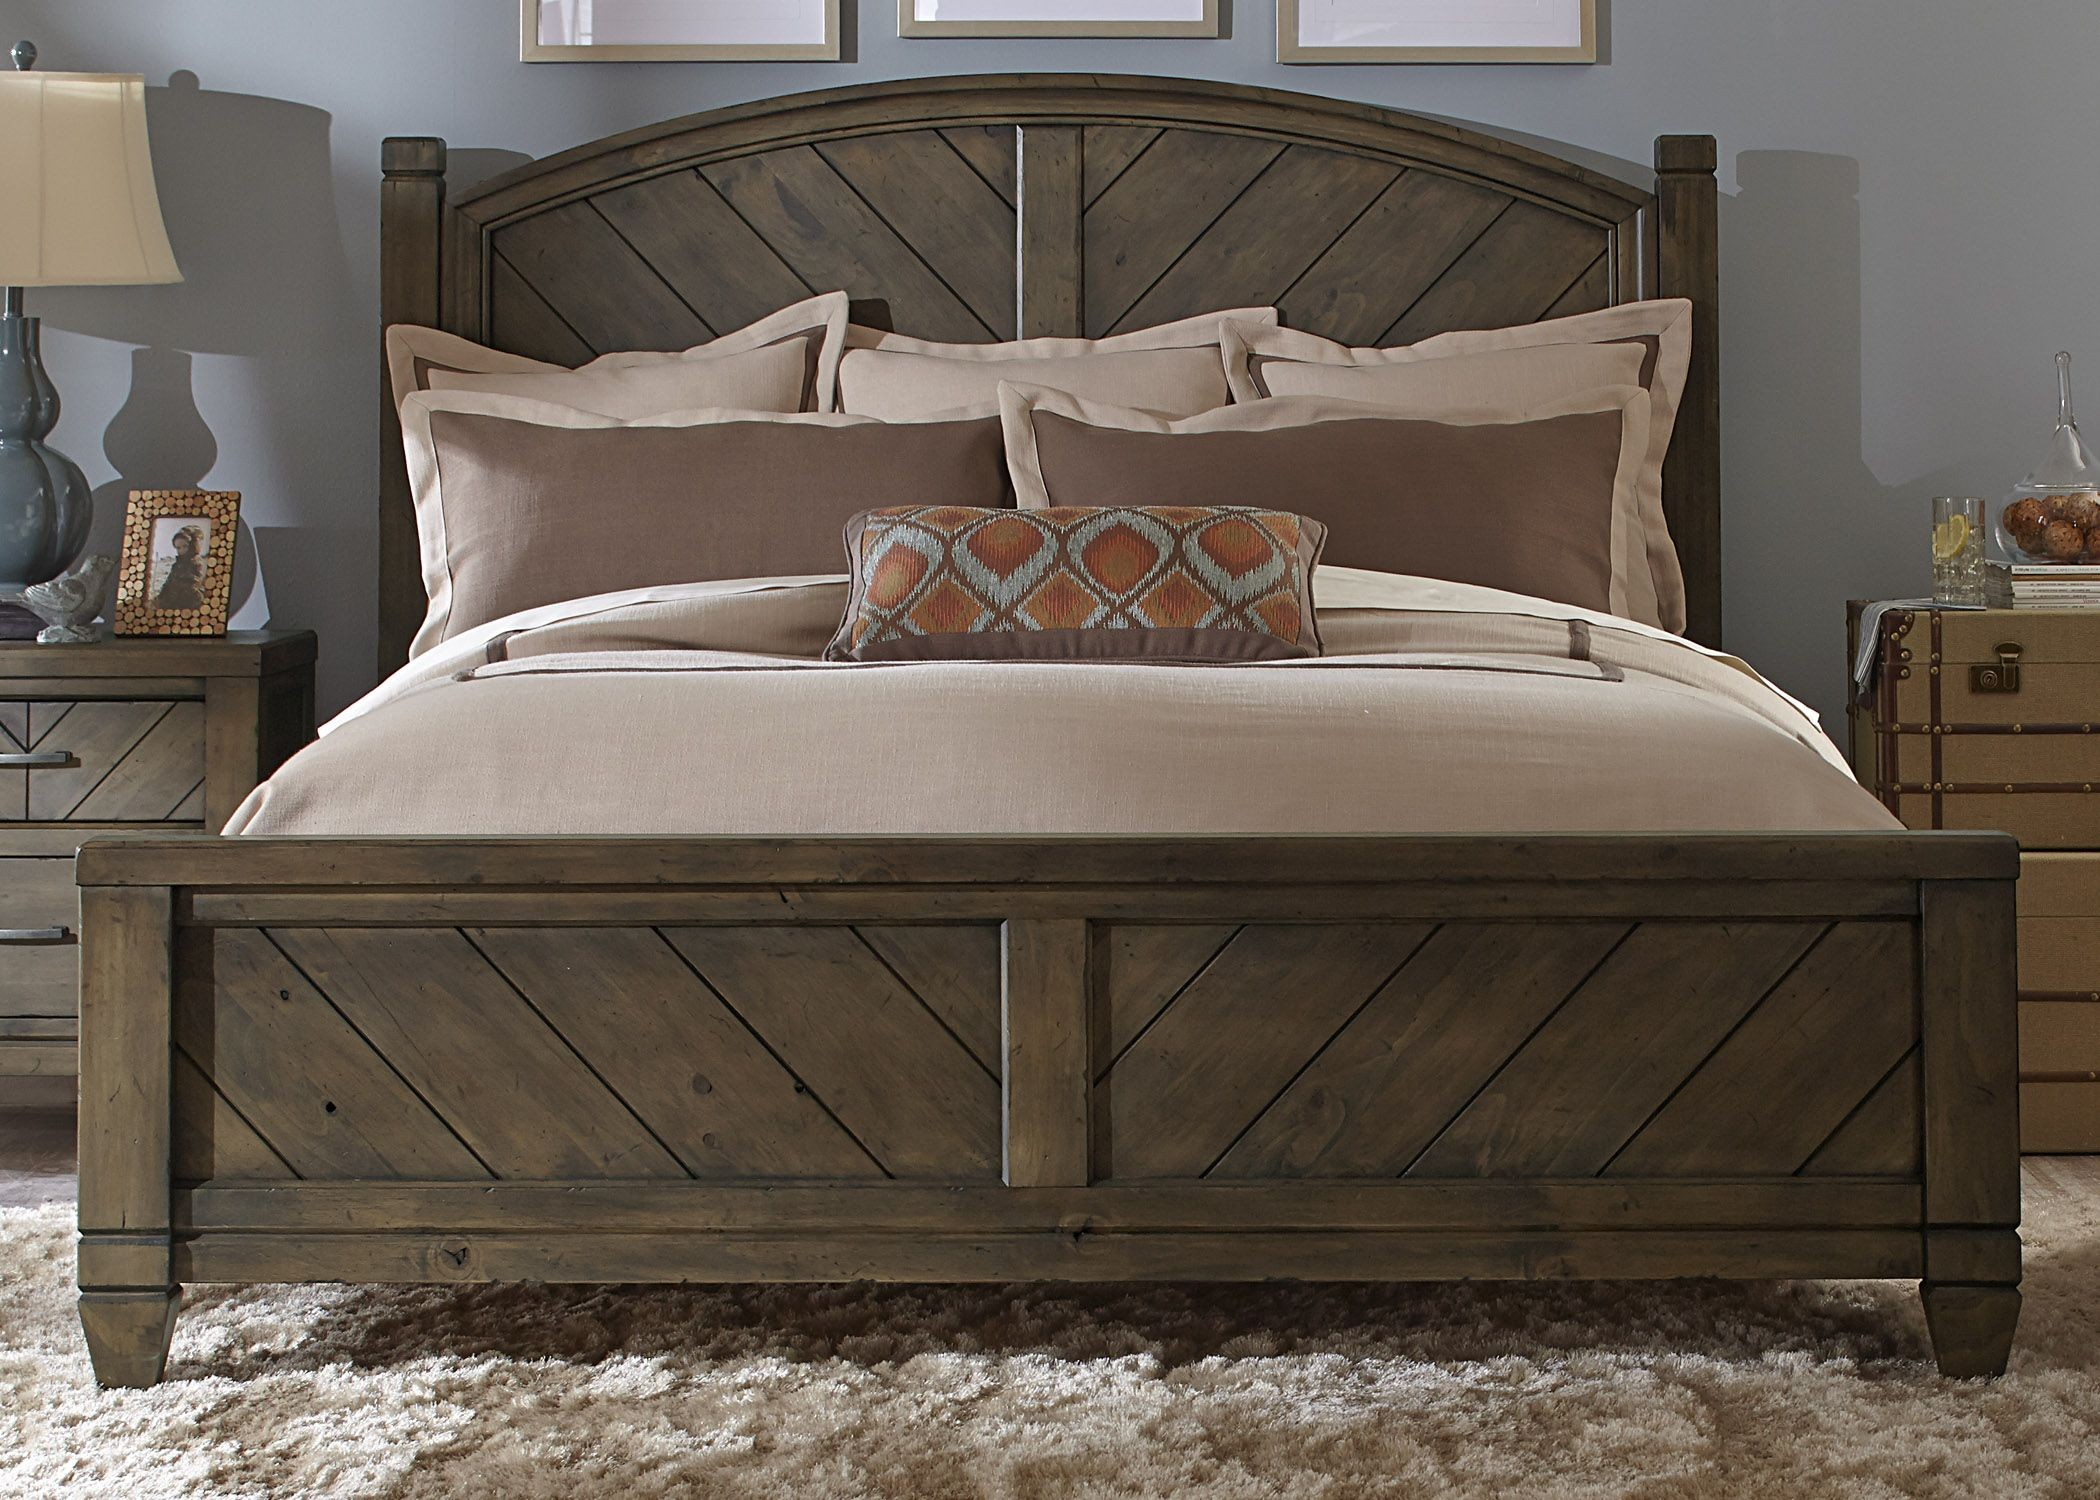 Modern Country King Poster Bed